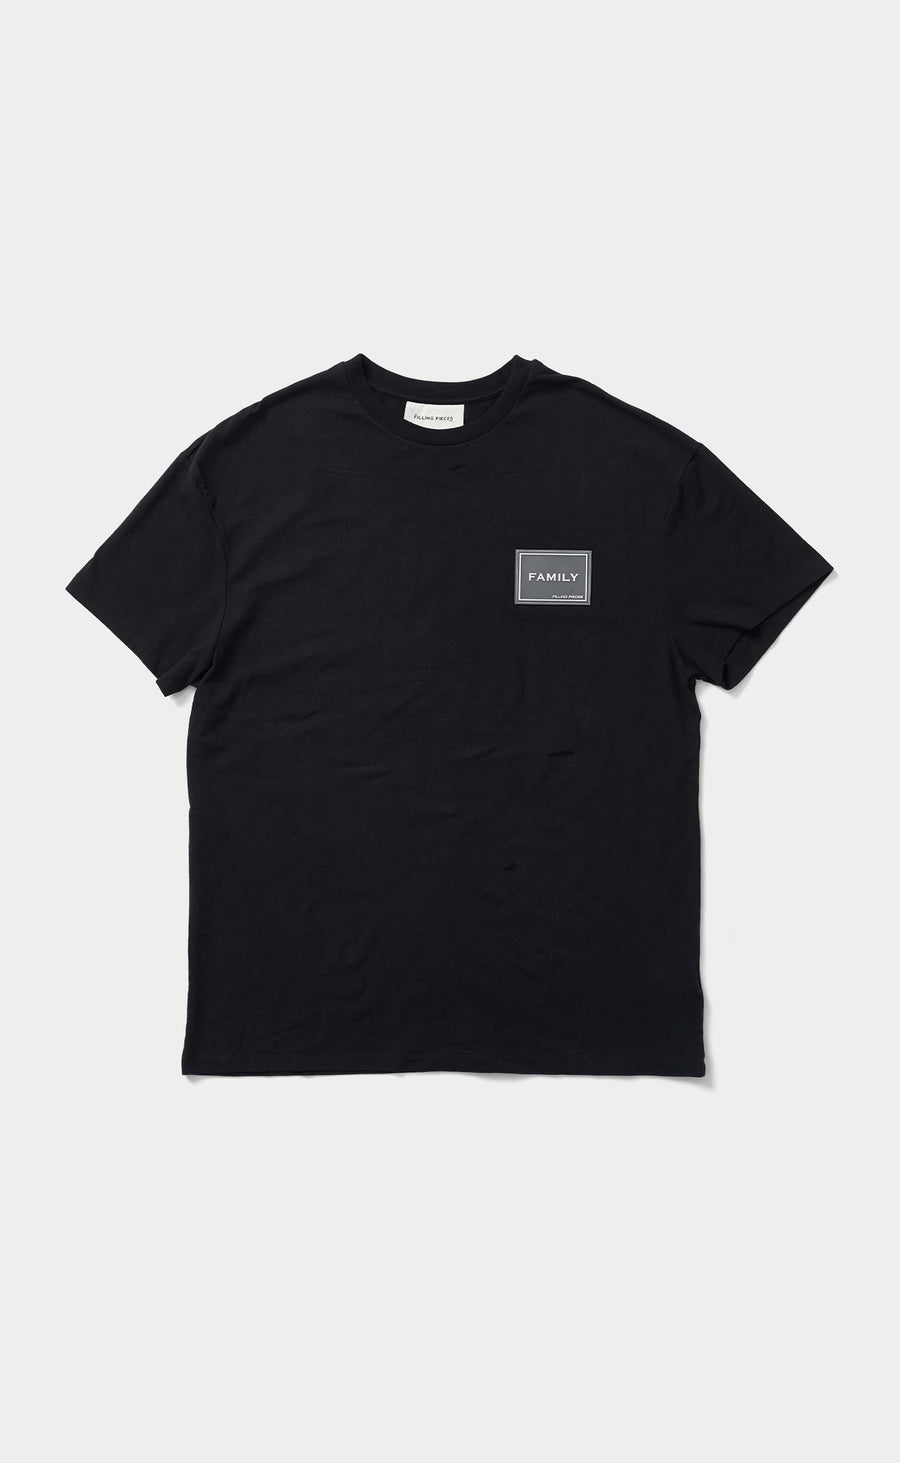 Logo Tee Ceo Mom Black - men